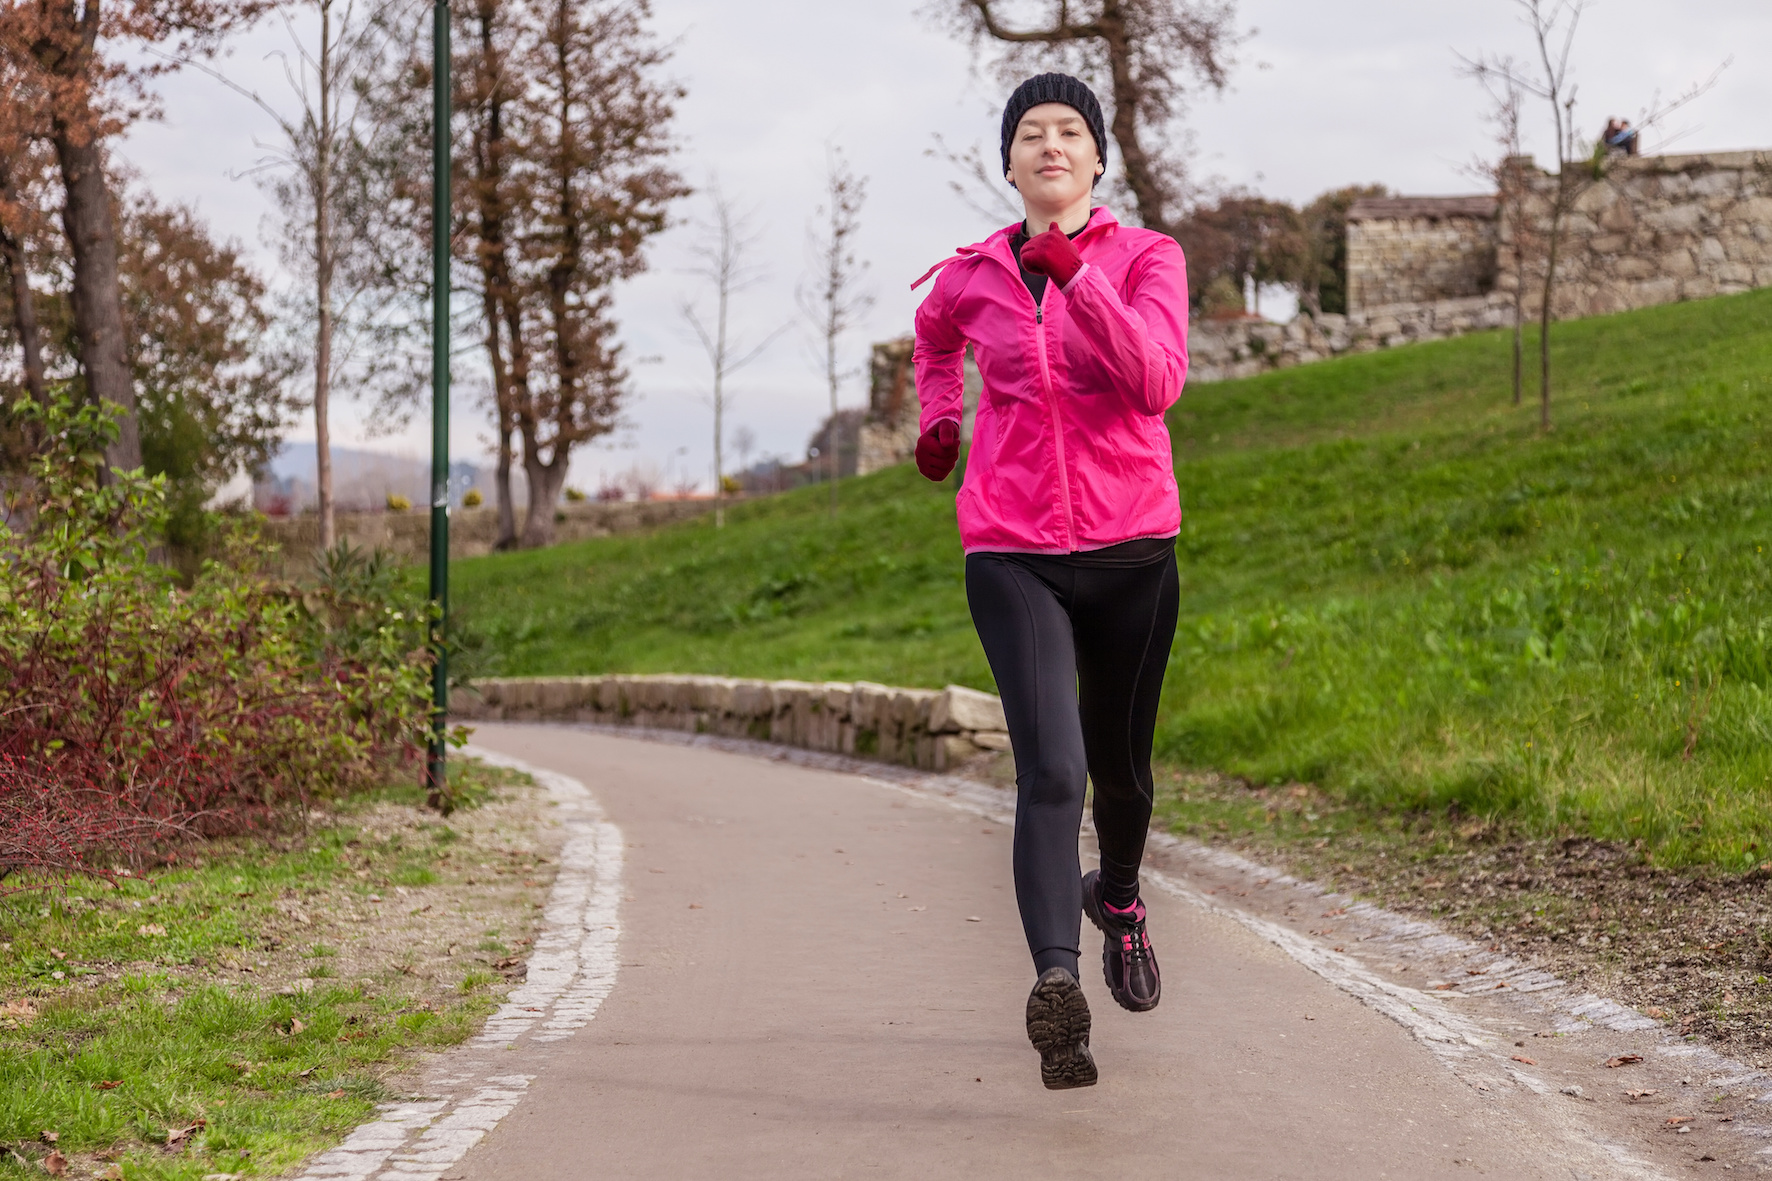 How To Stick To Your New Year's Weight Loss Resolution